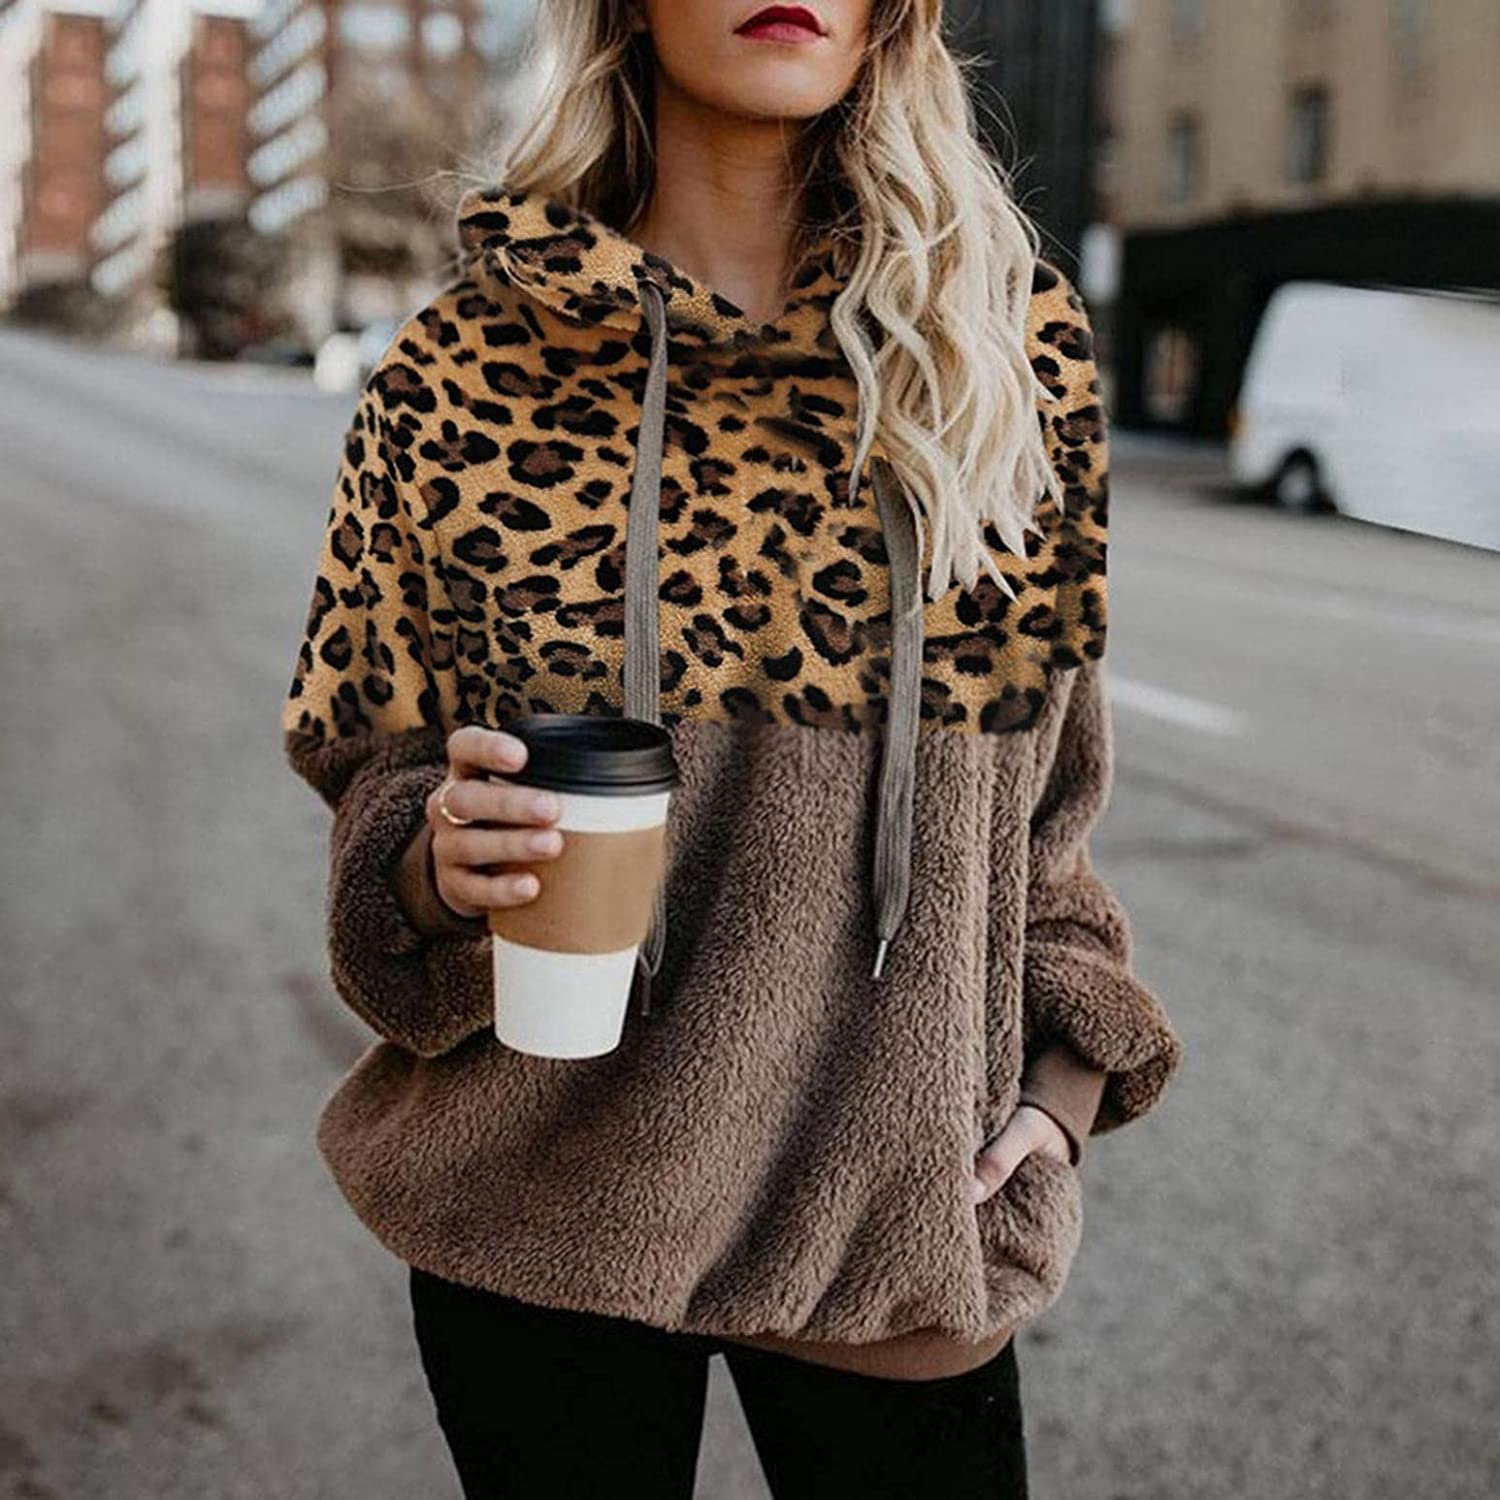 lucyouth Hoodies for Women Casual Double Fuzzy Sherpa Sweatshirt Pullover Leopard Print Winter Coat Outwear with Pockets